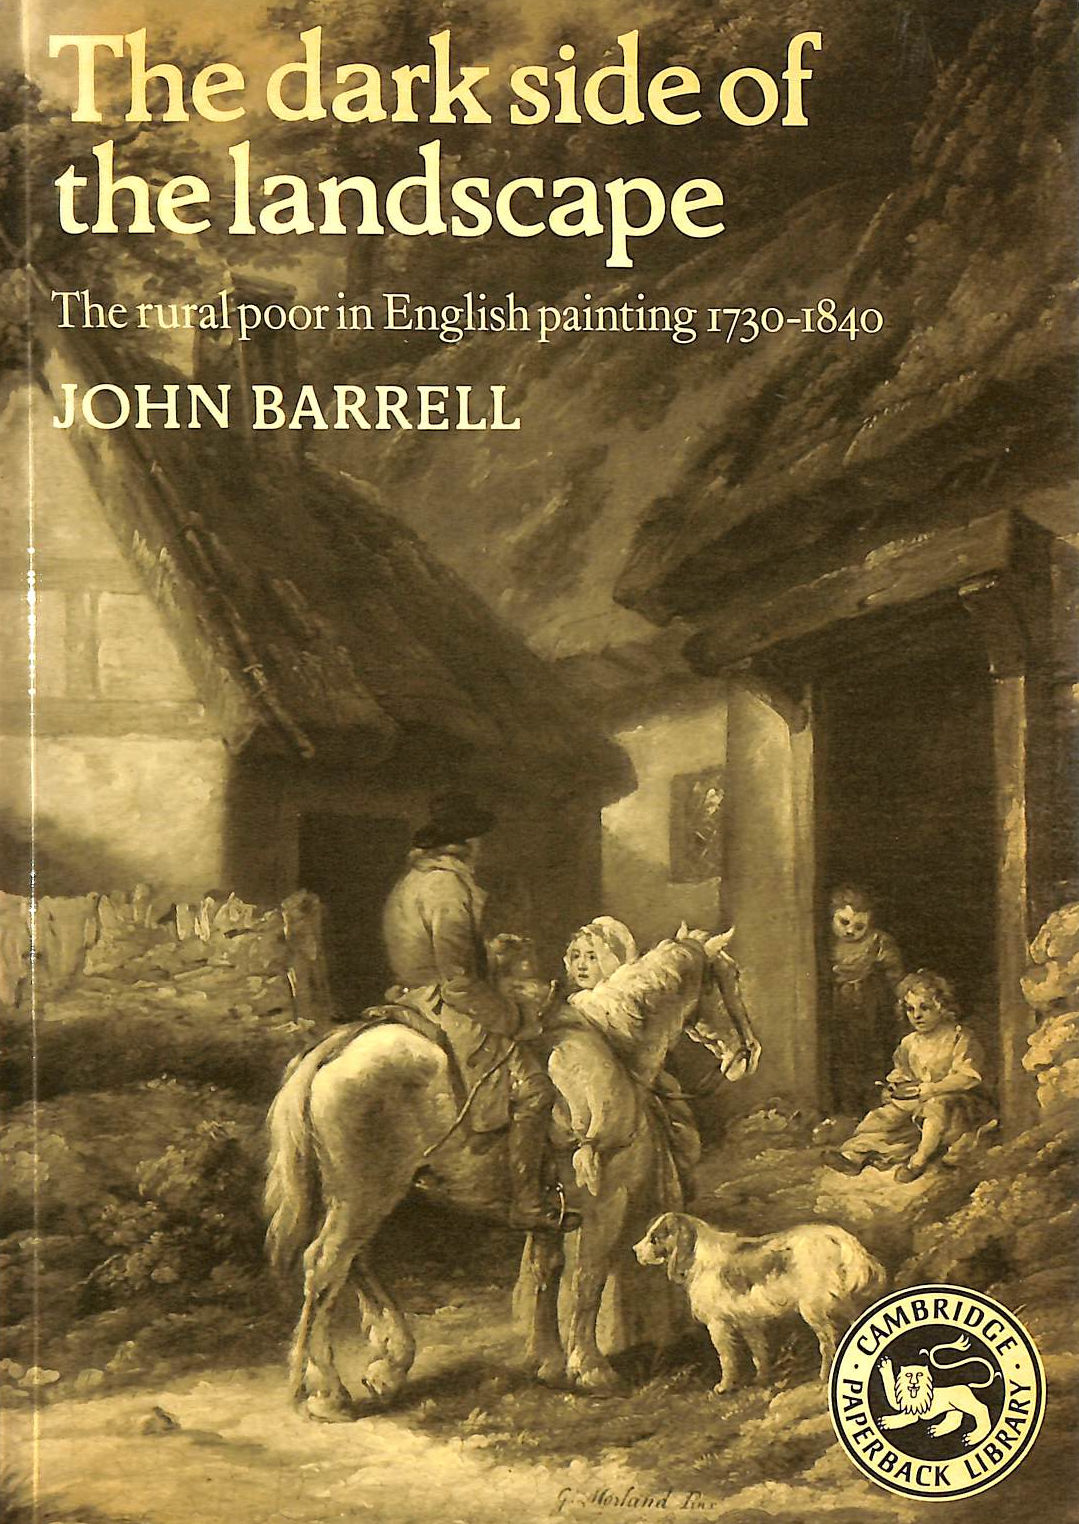 Image for The Dark Side Of The Landscape: The Rural Poor In English Painting 1730-1840 (Cambridge Paperback Library)